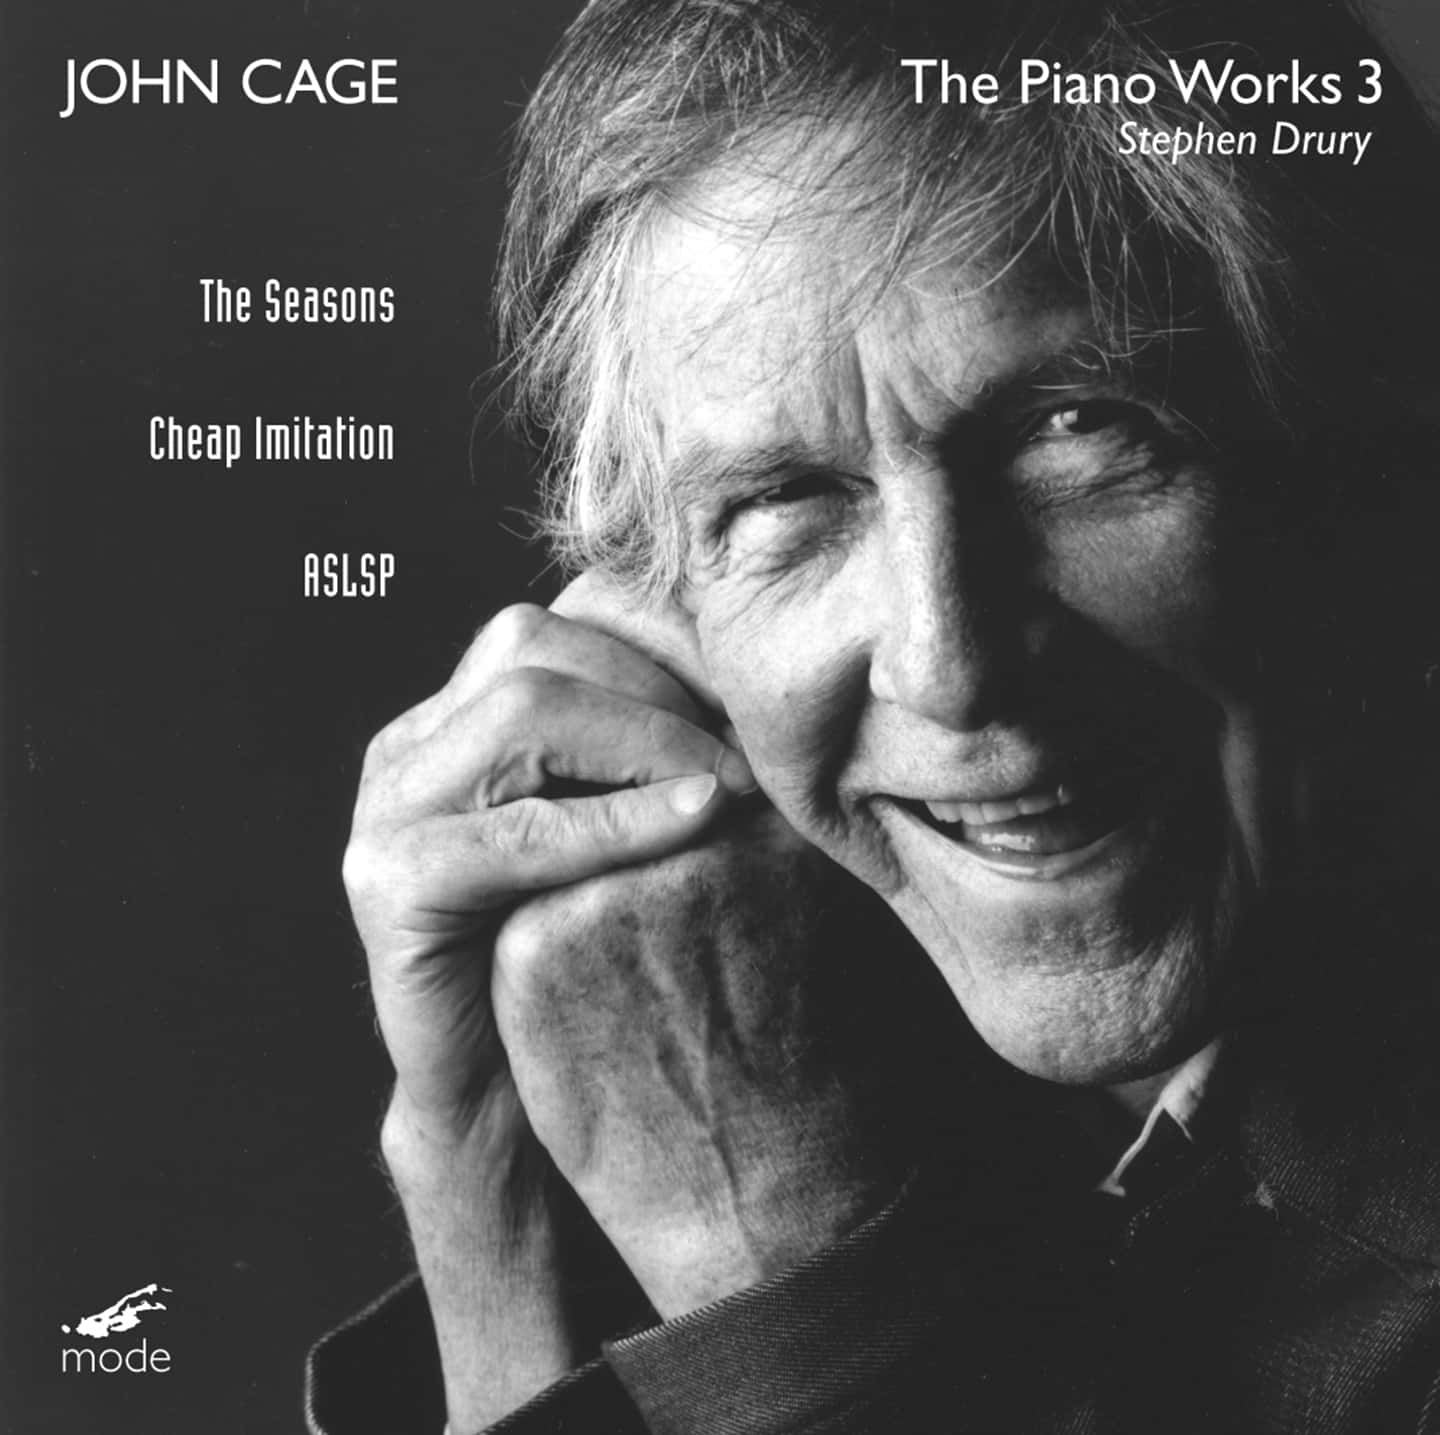 Cage Edition 17 – The Piano Works 3